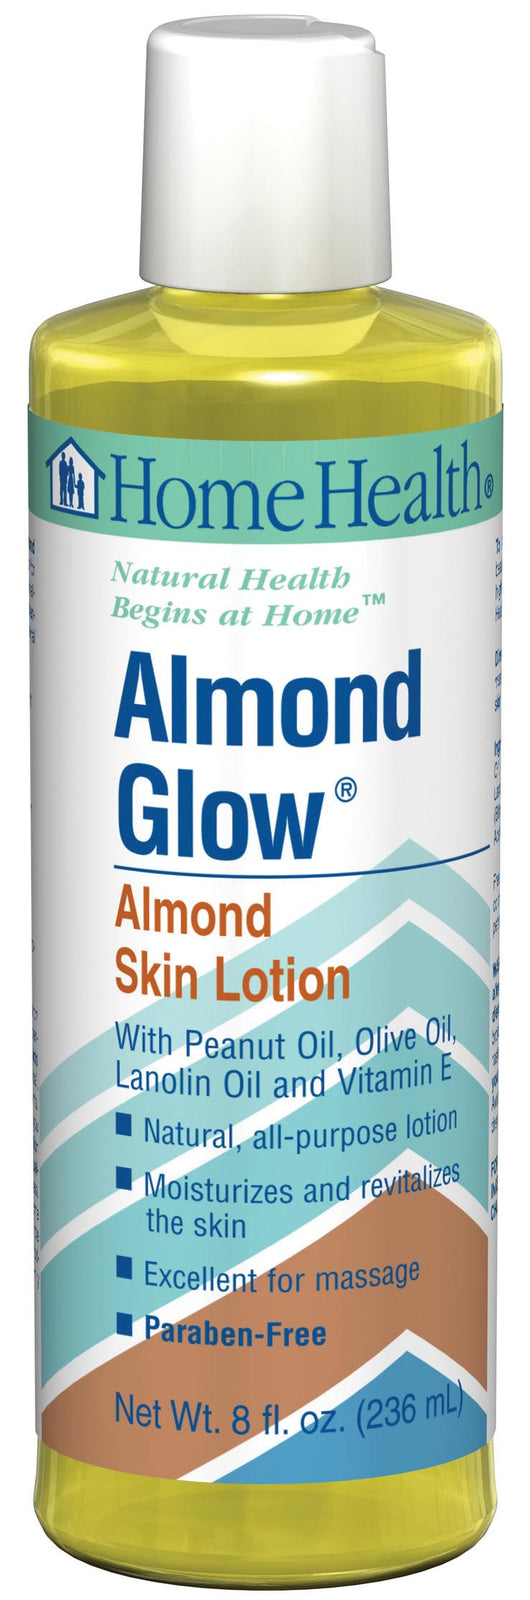 Home Health Almond Glow Massage Oil - 8 ozs.